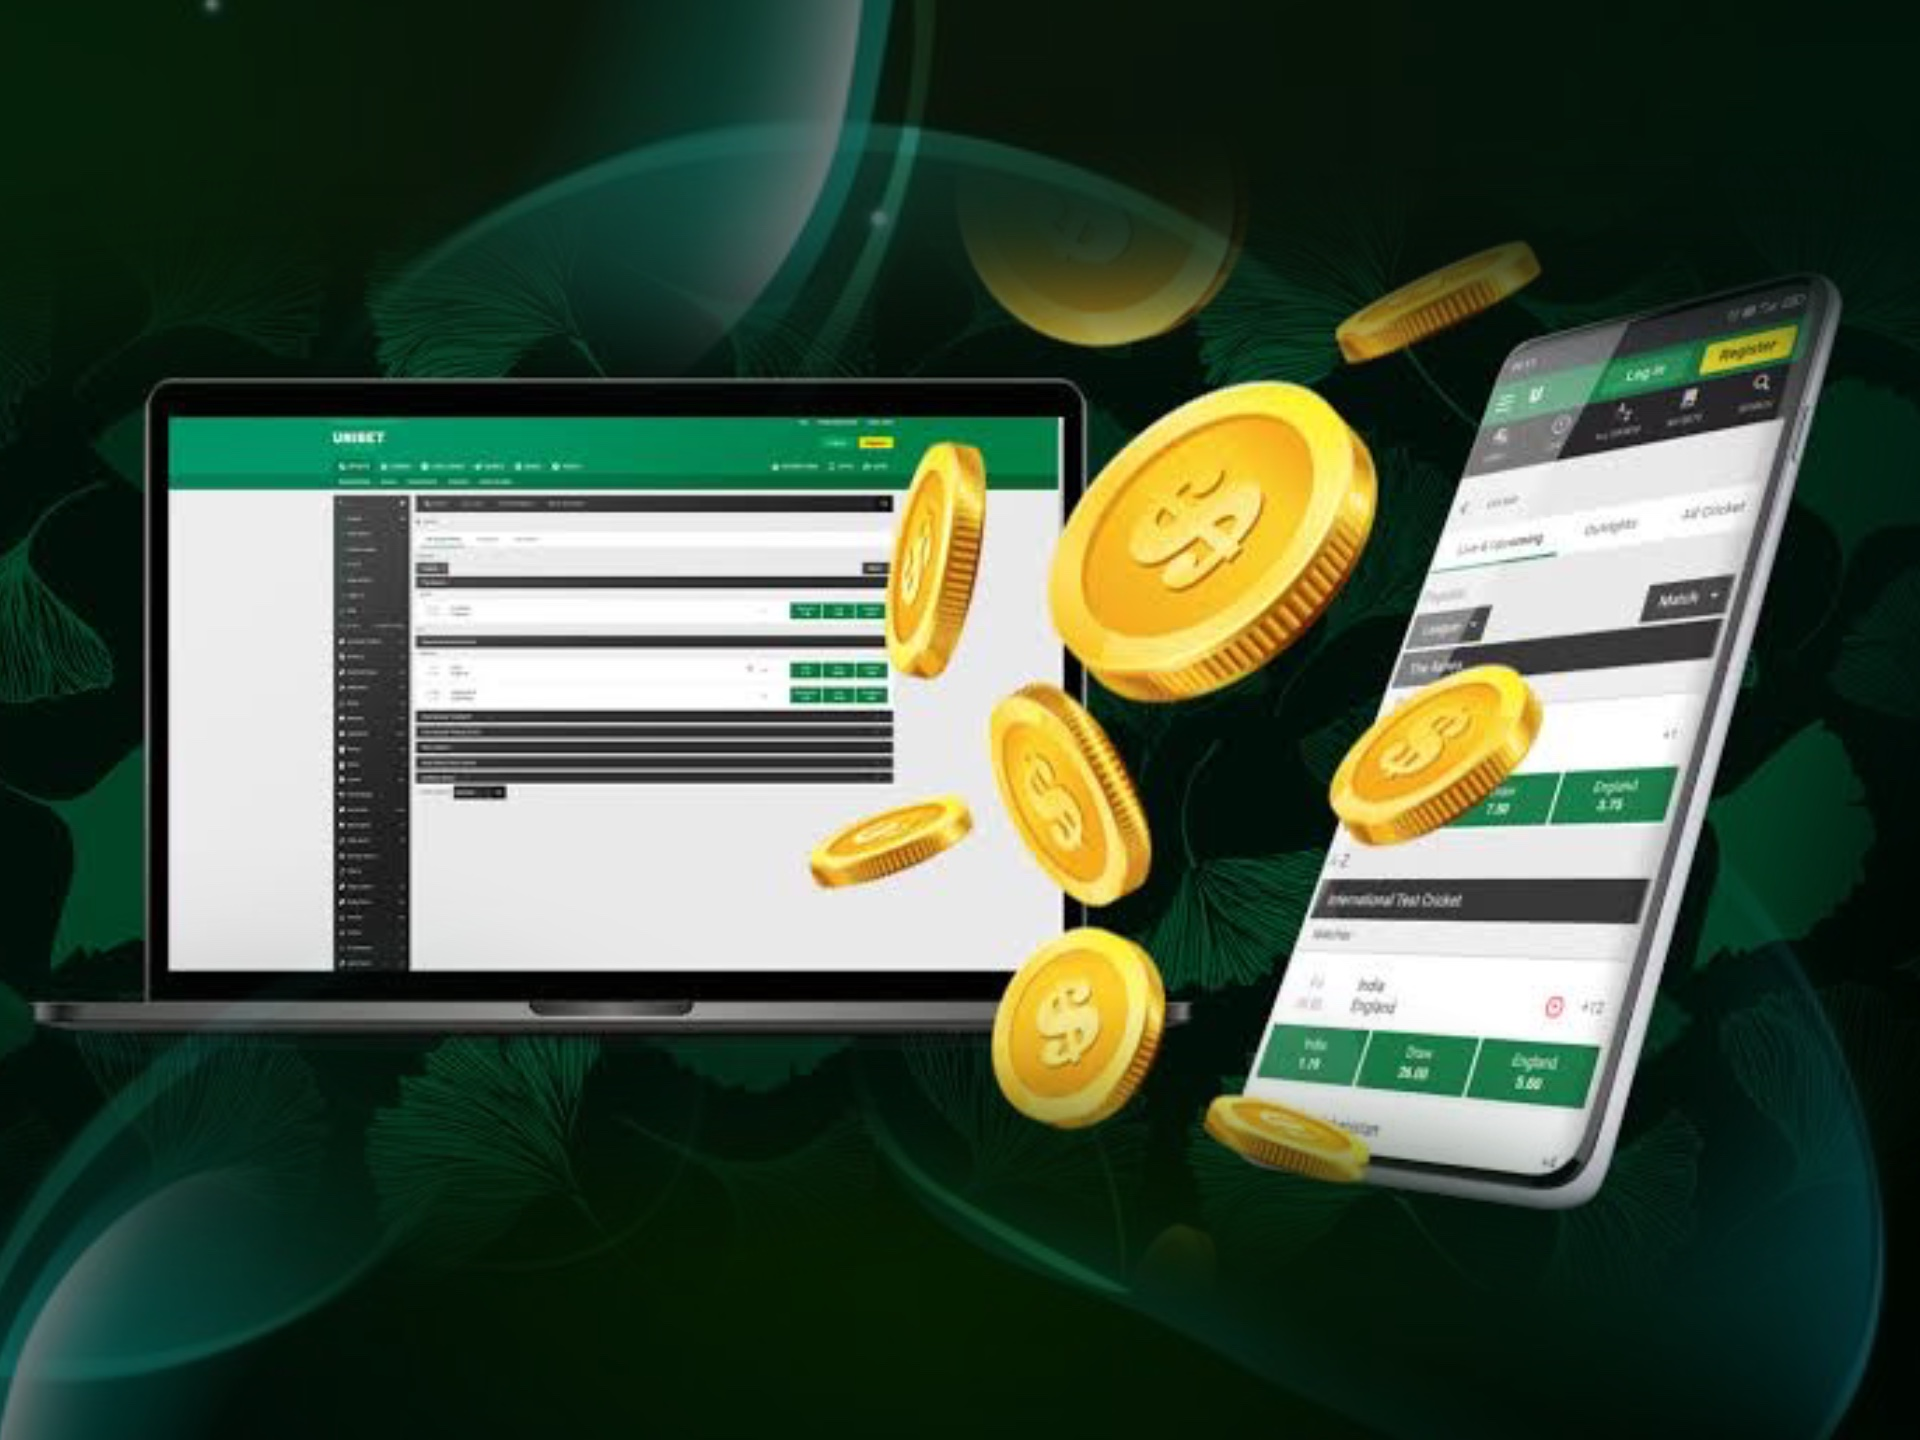 If you do not want to install any software, then Unibet mobile site is just for you.